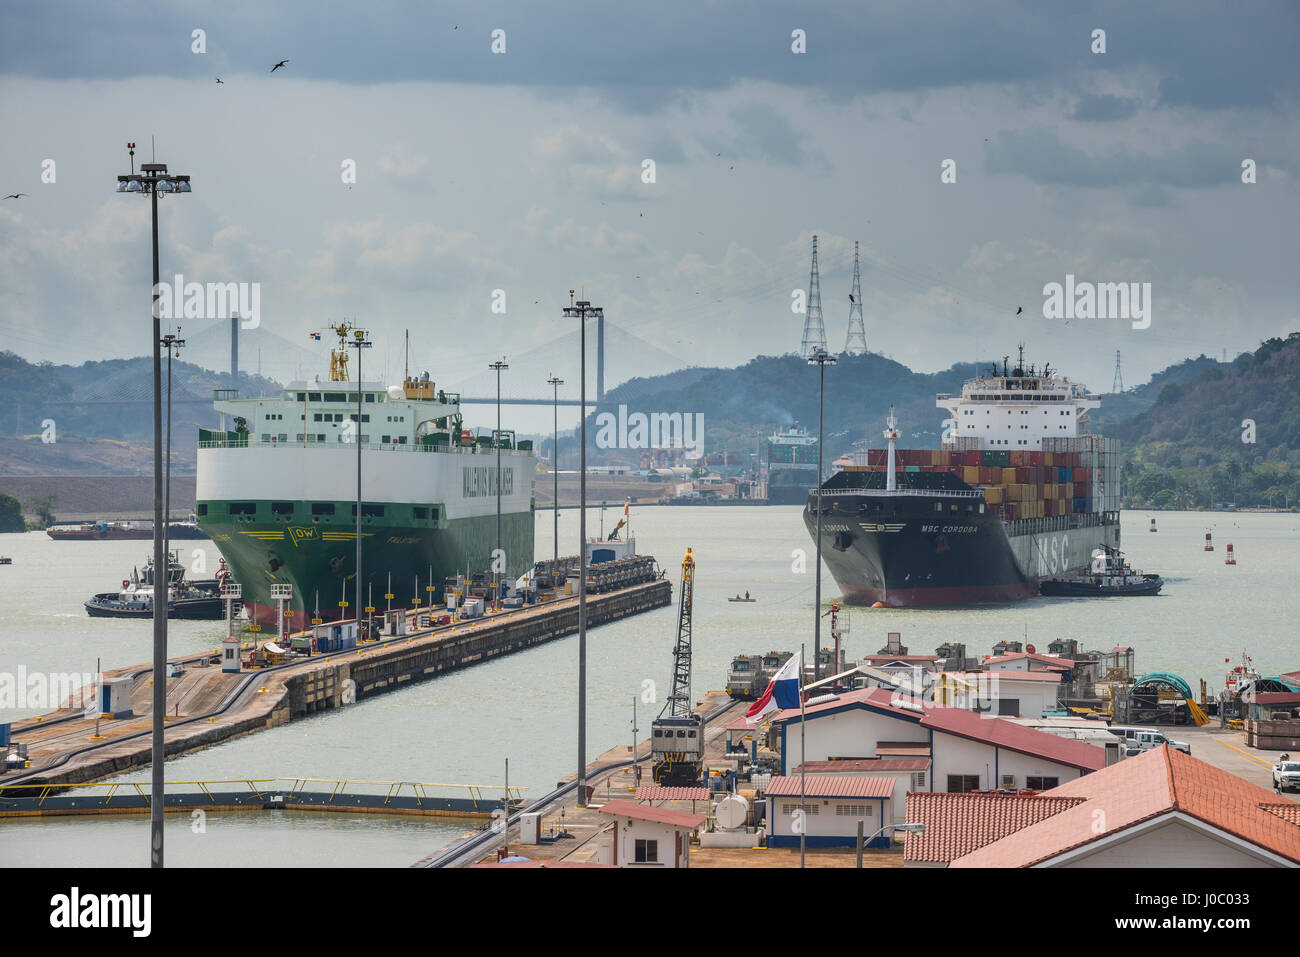 Cargo boats passing the Miraflores Locks, Panama Canal, Panama City, Panama, Central America - Stock Image